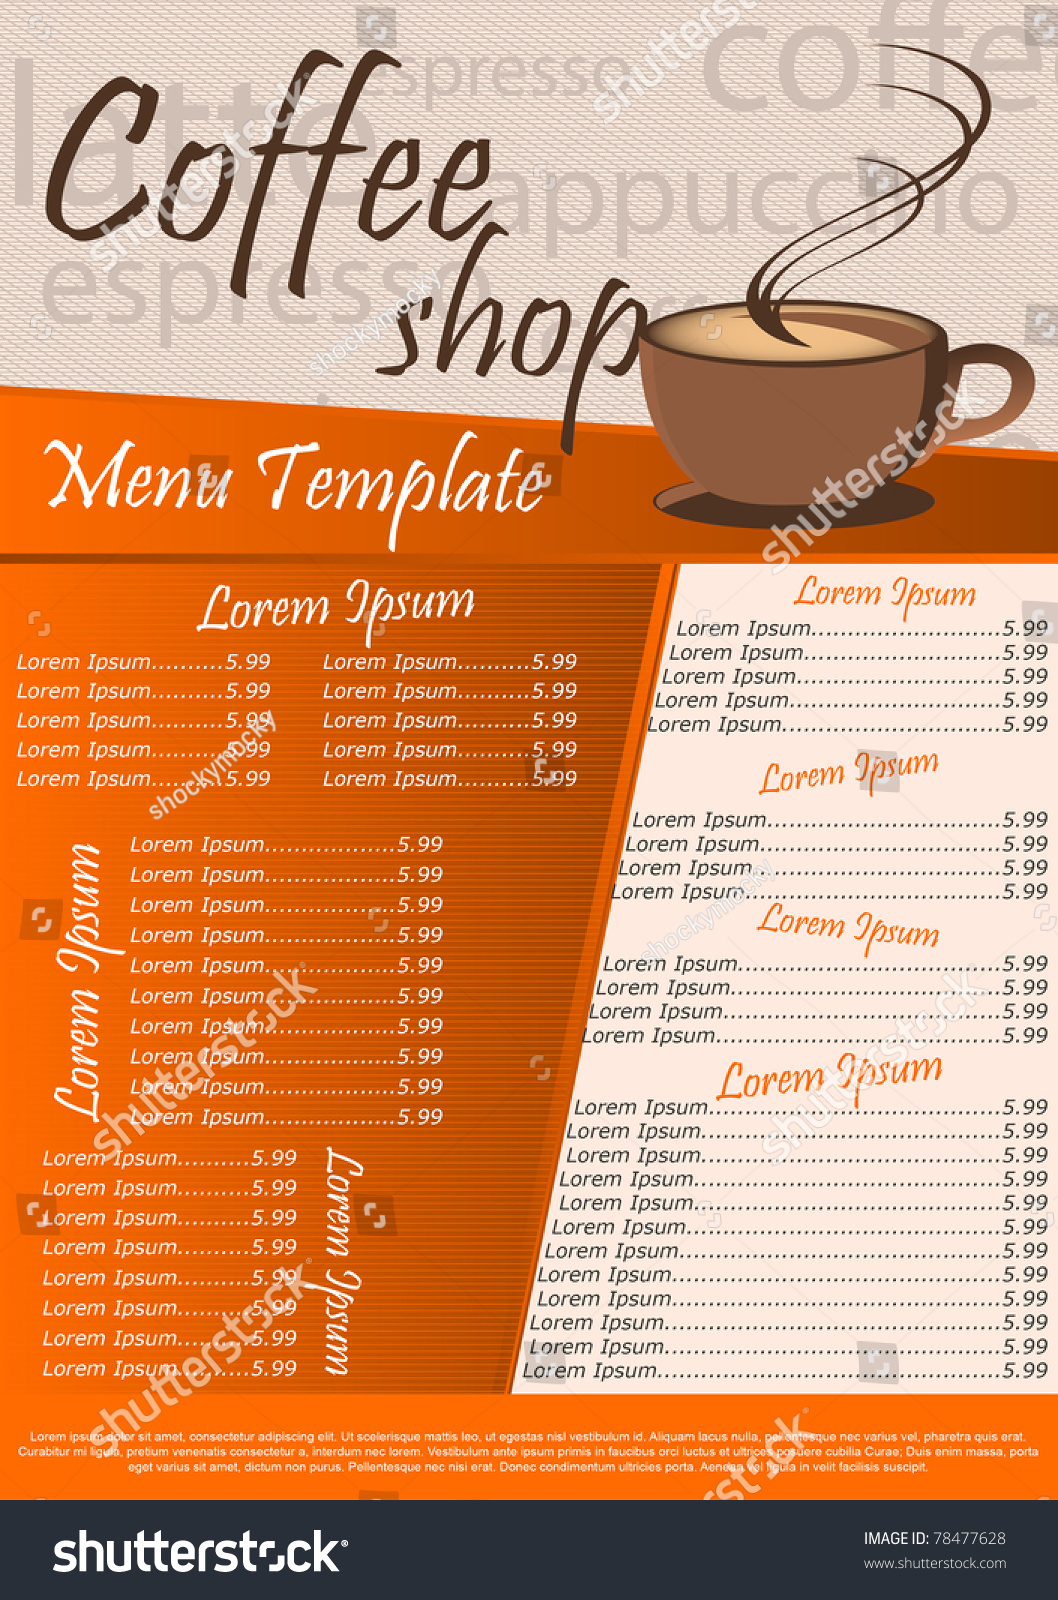 sandwich shop menu template - coffee shop menu template